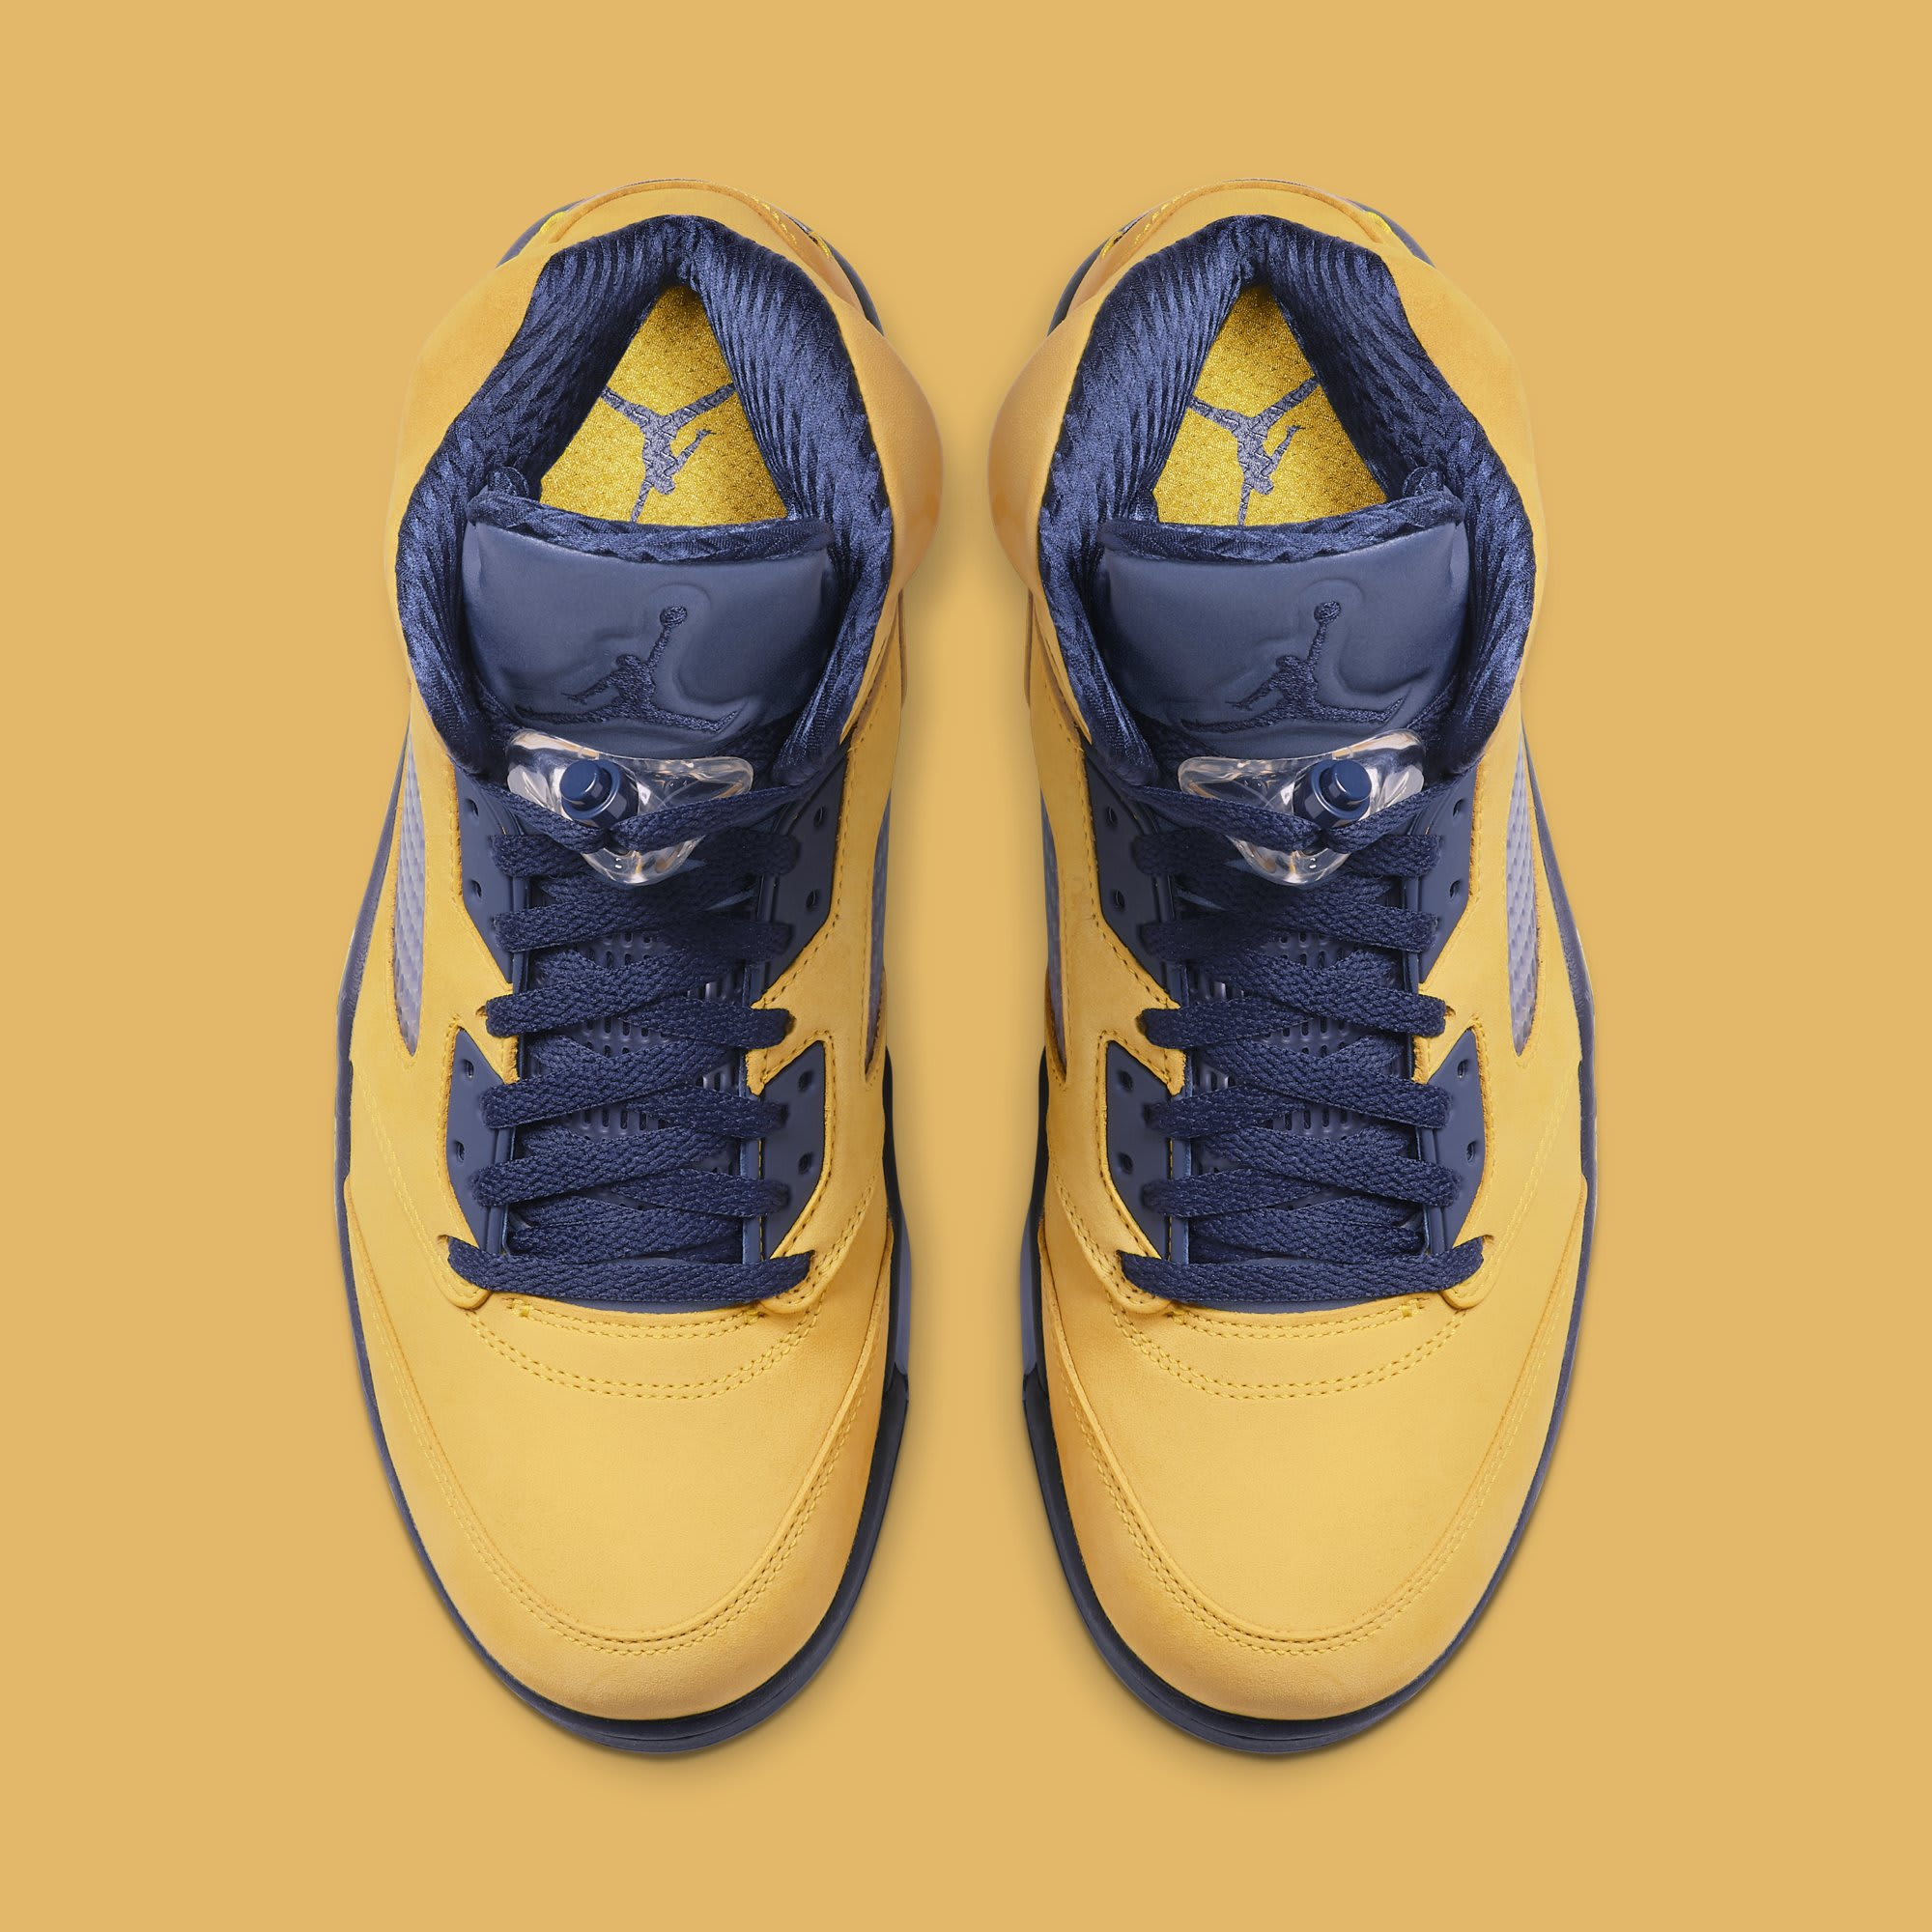 Air Jordan 5 'Michigan' CQ9541-704 (Top)